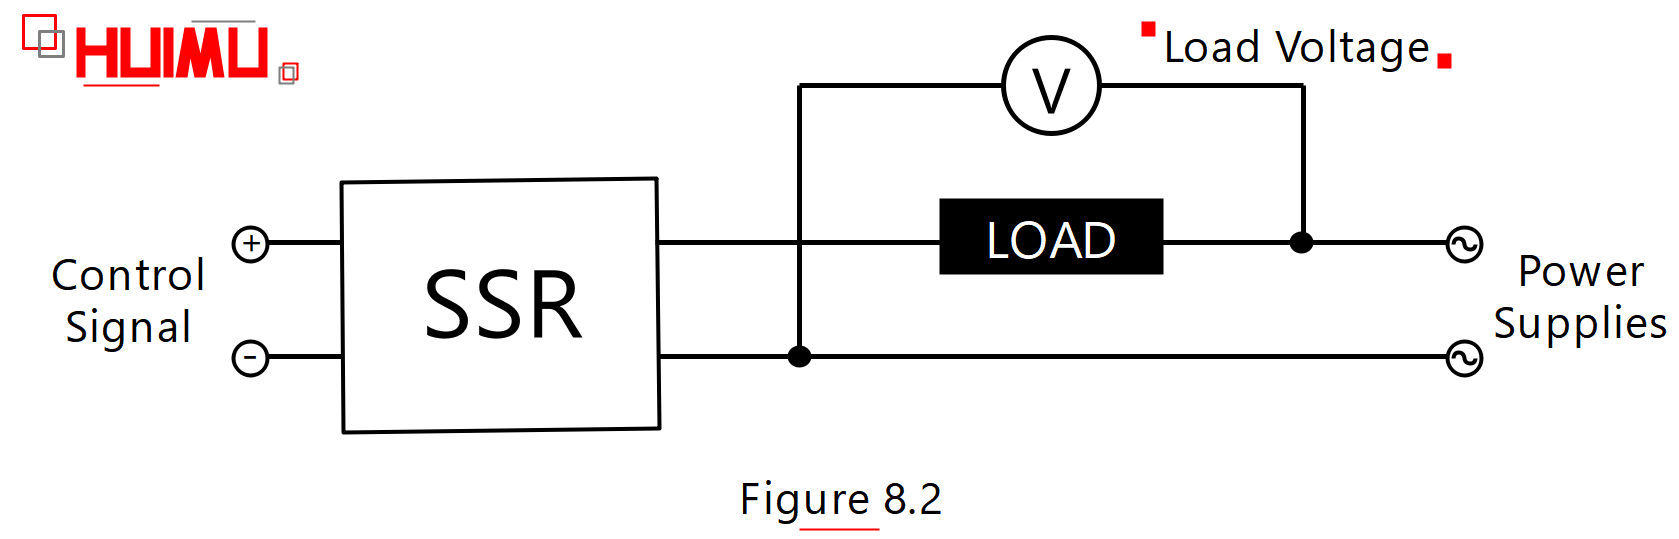 hight resolution of load voltage of the solid state relays